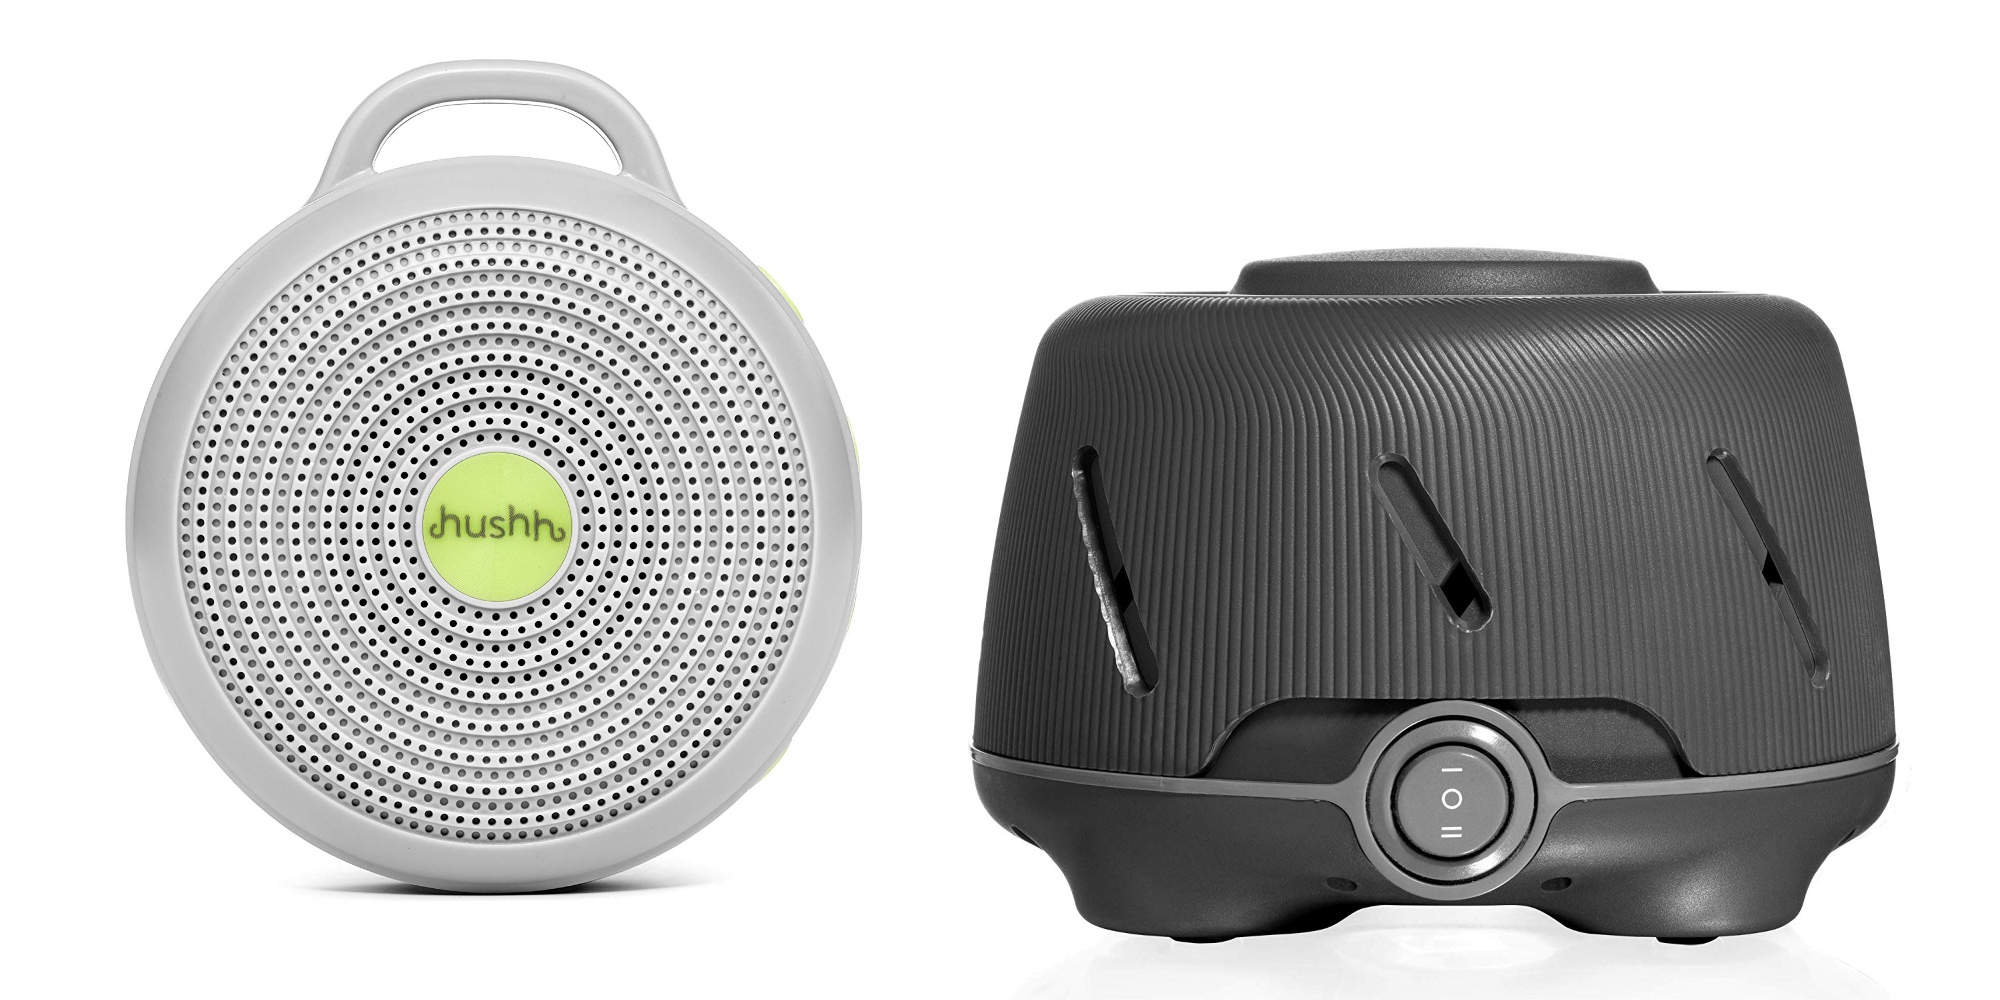 Marpac's sound machines are up to 32% off and help you get a better night's rest from $20